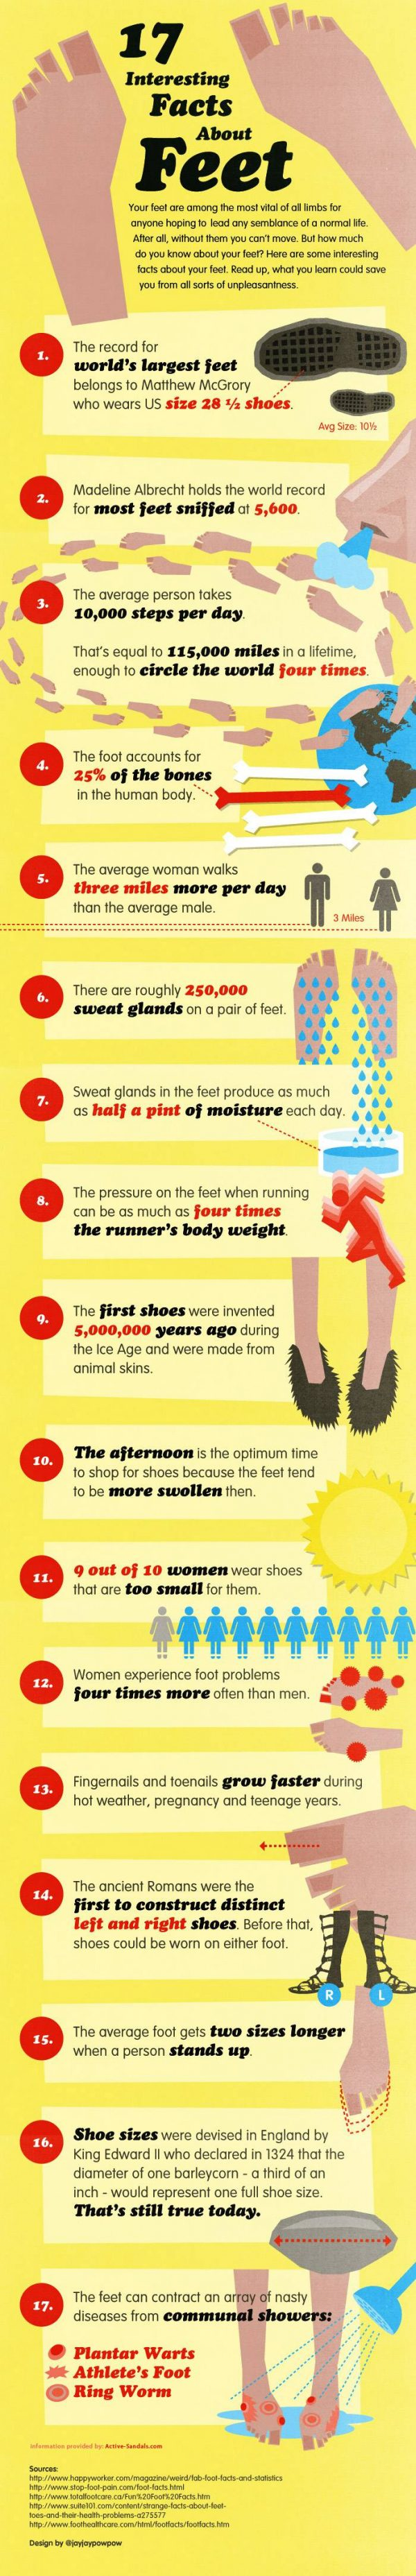 17 Interesting Facts About Feet (Infographic)